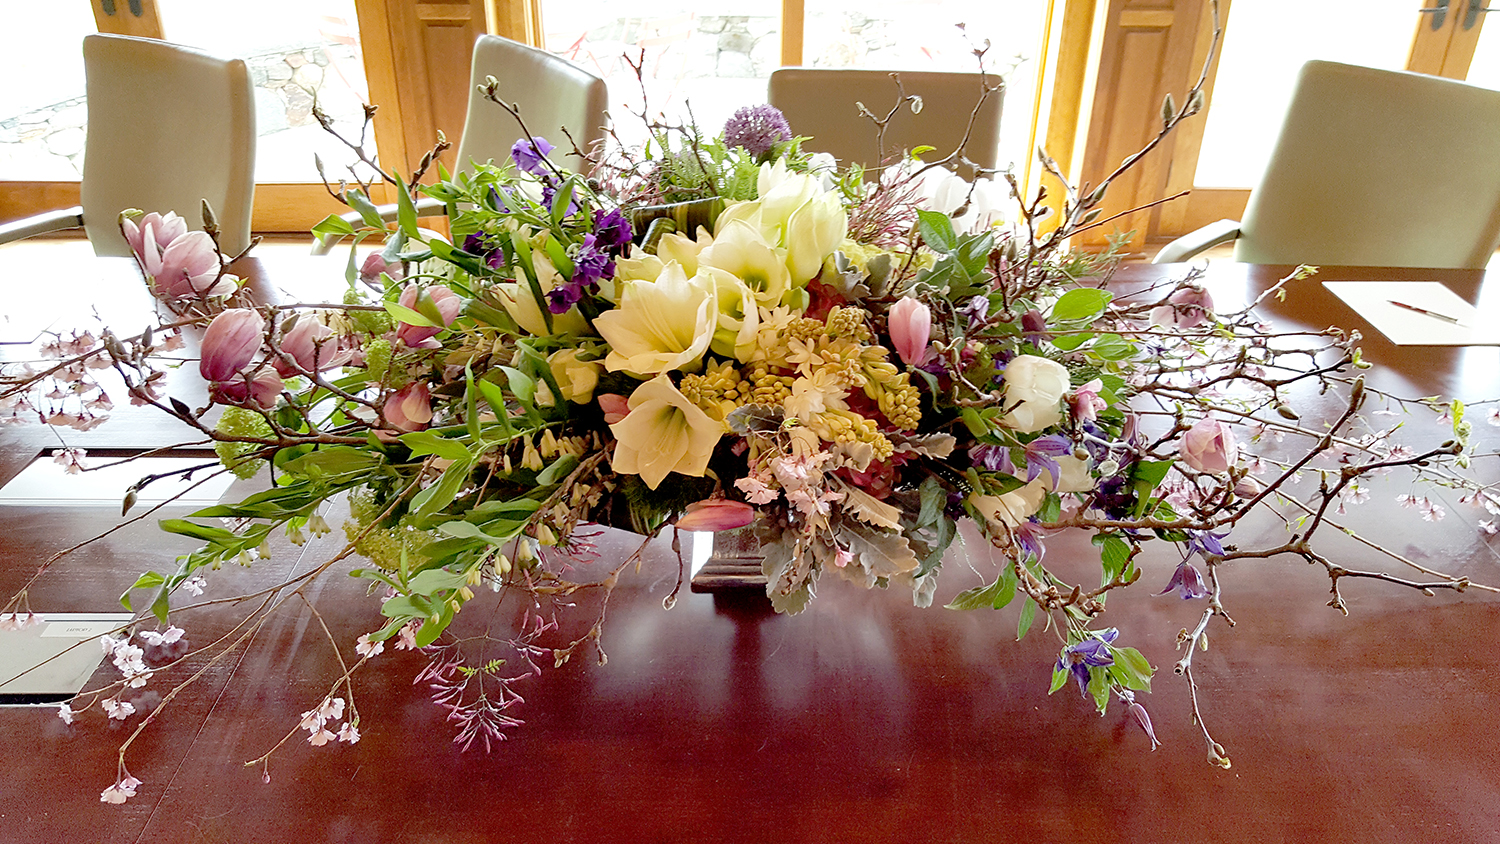 Conference room table centerpieces by Bouquets & Beyond